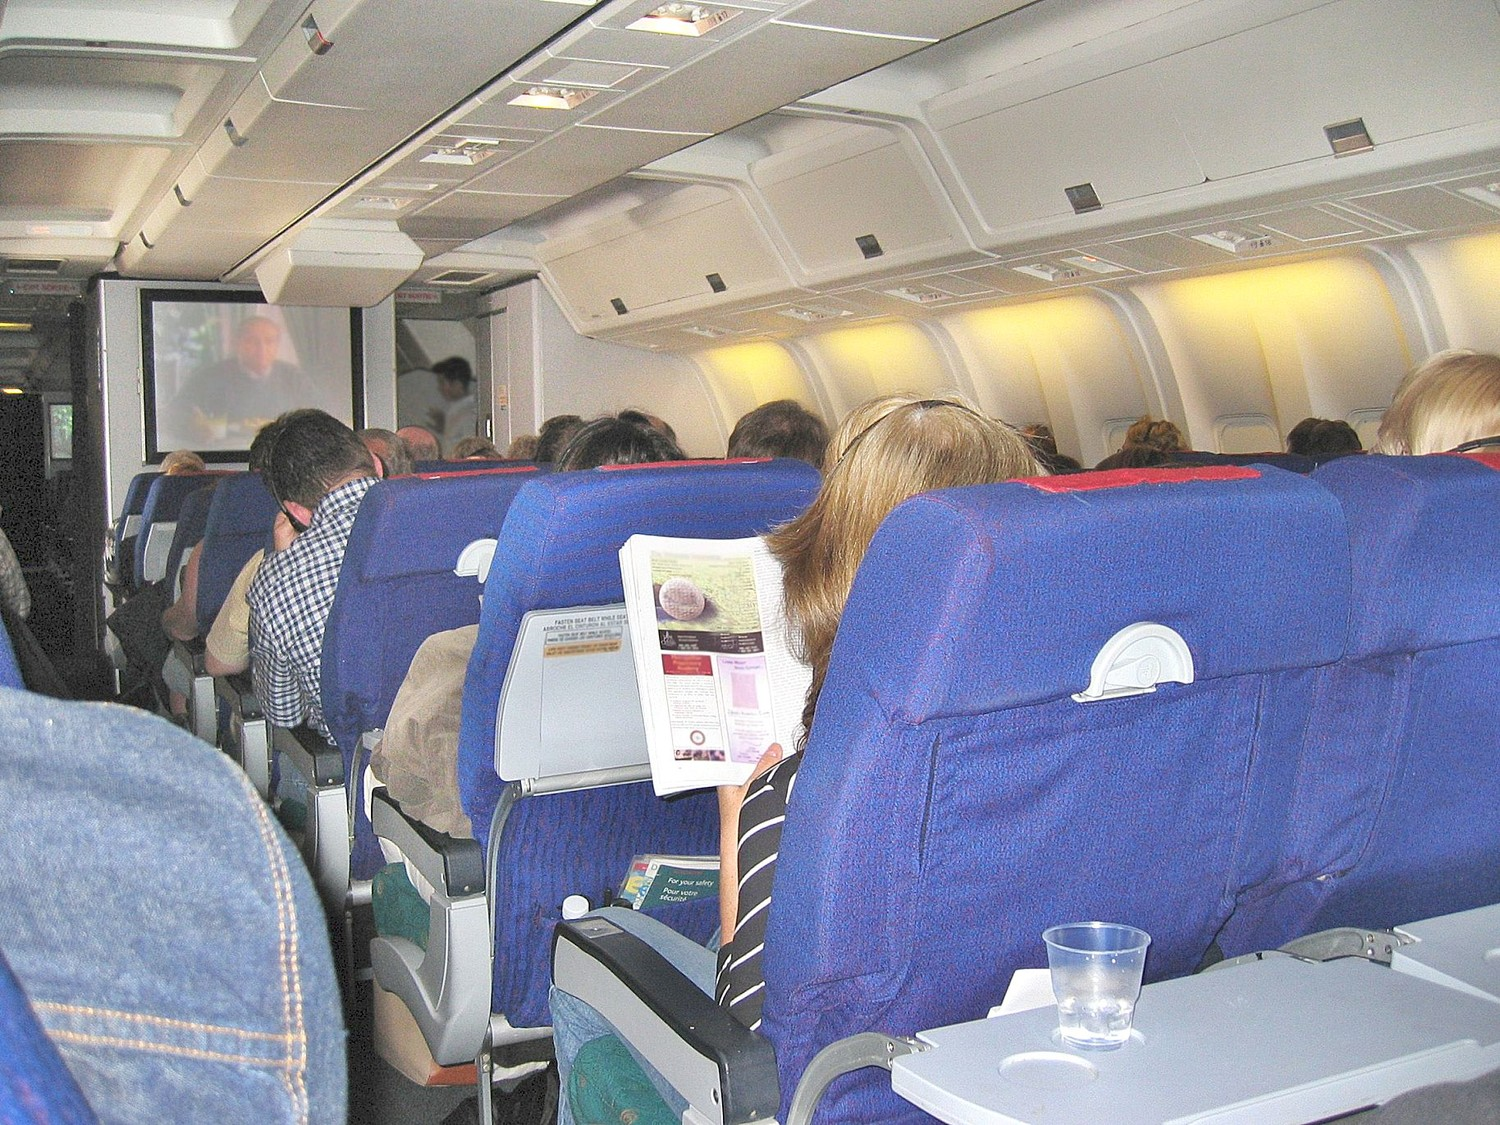 Travel Tips: Want to stay healthy while flying?